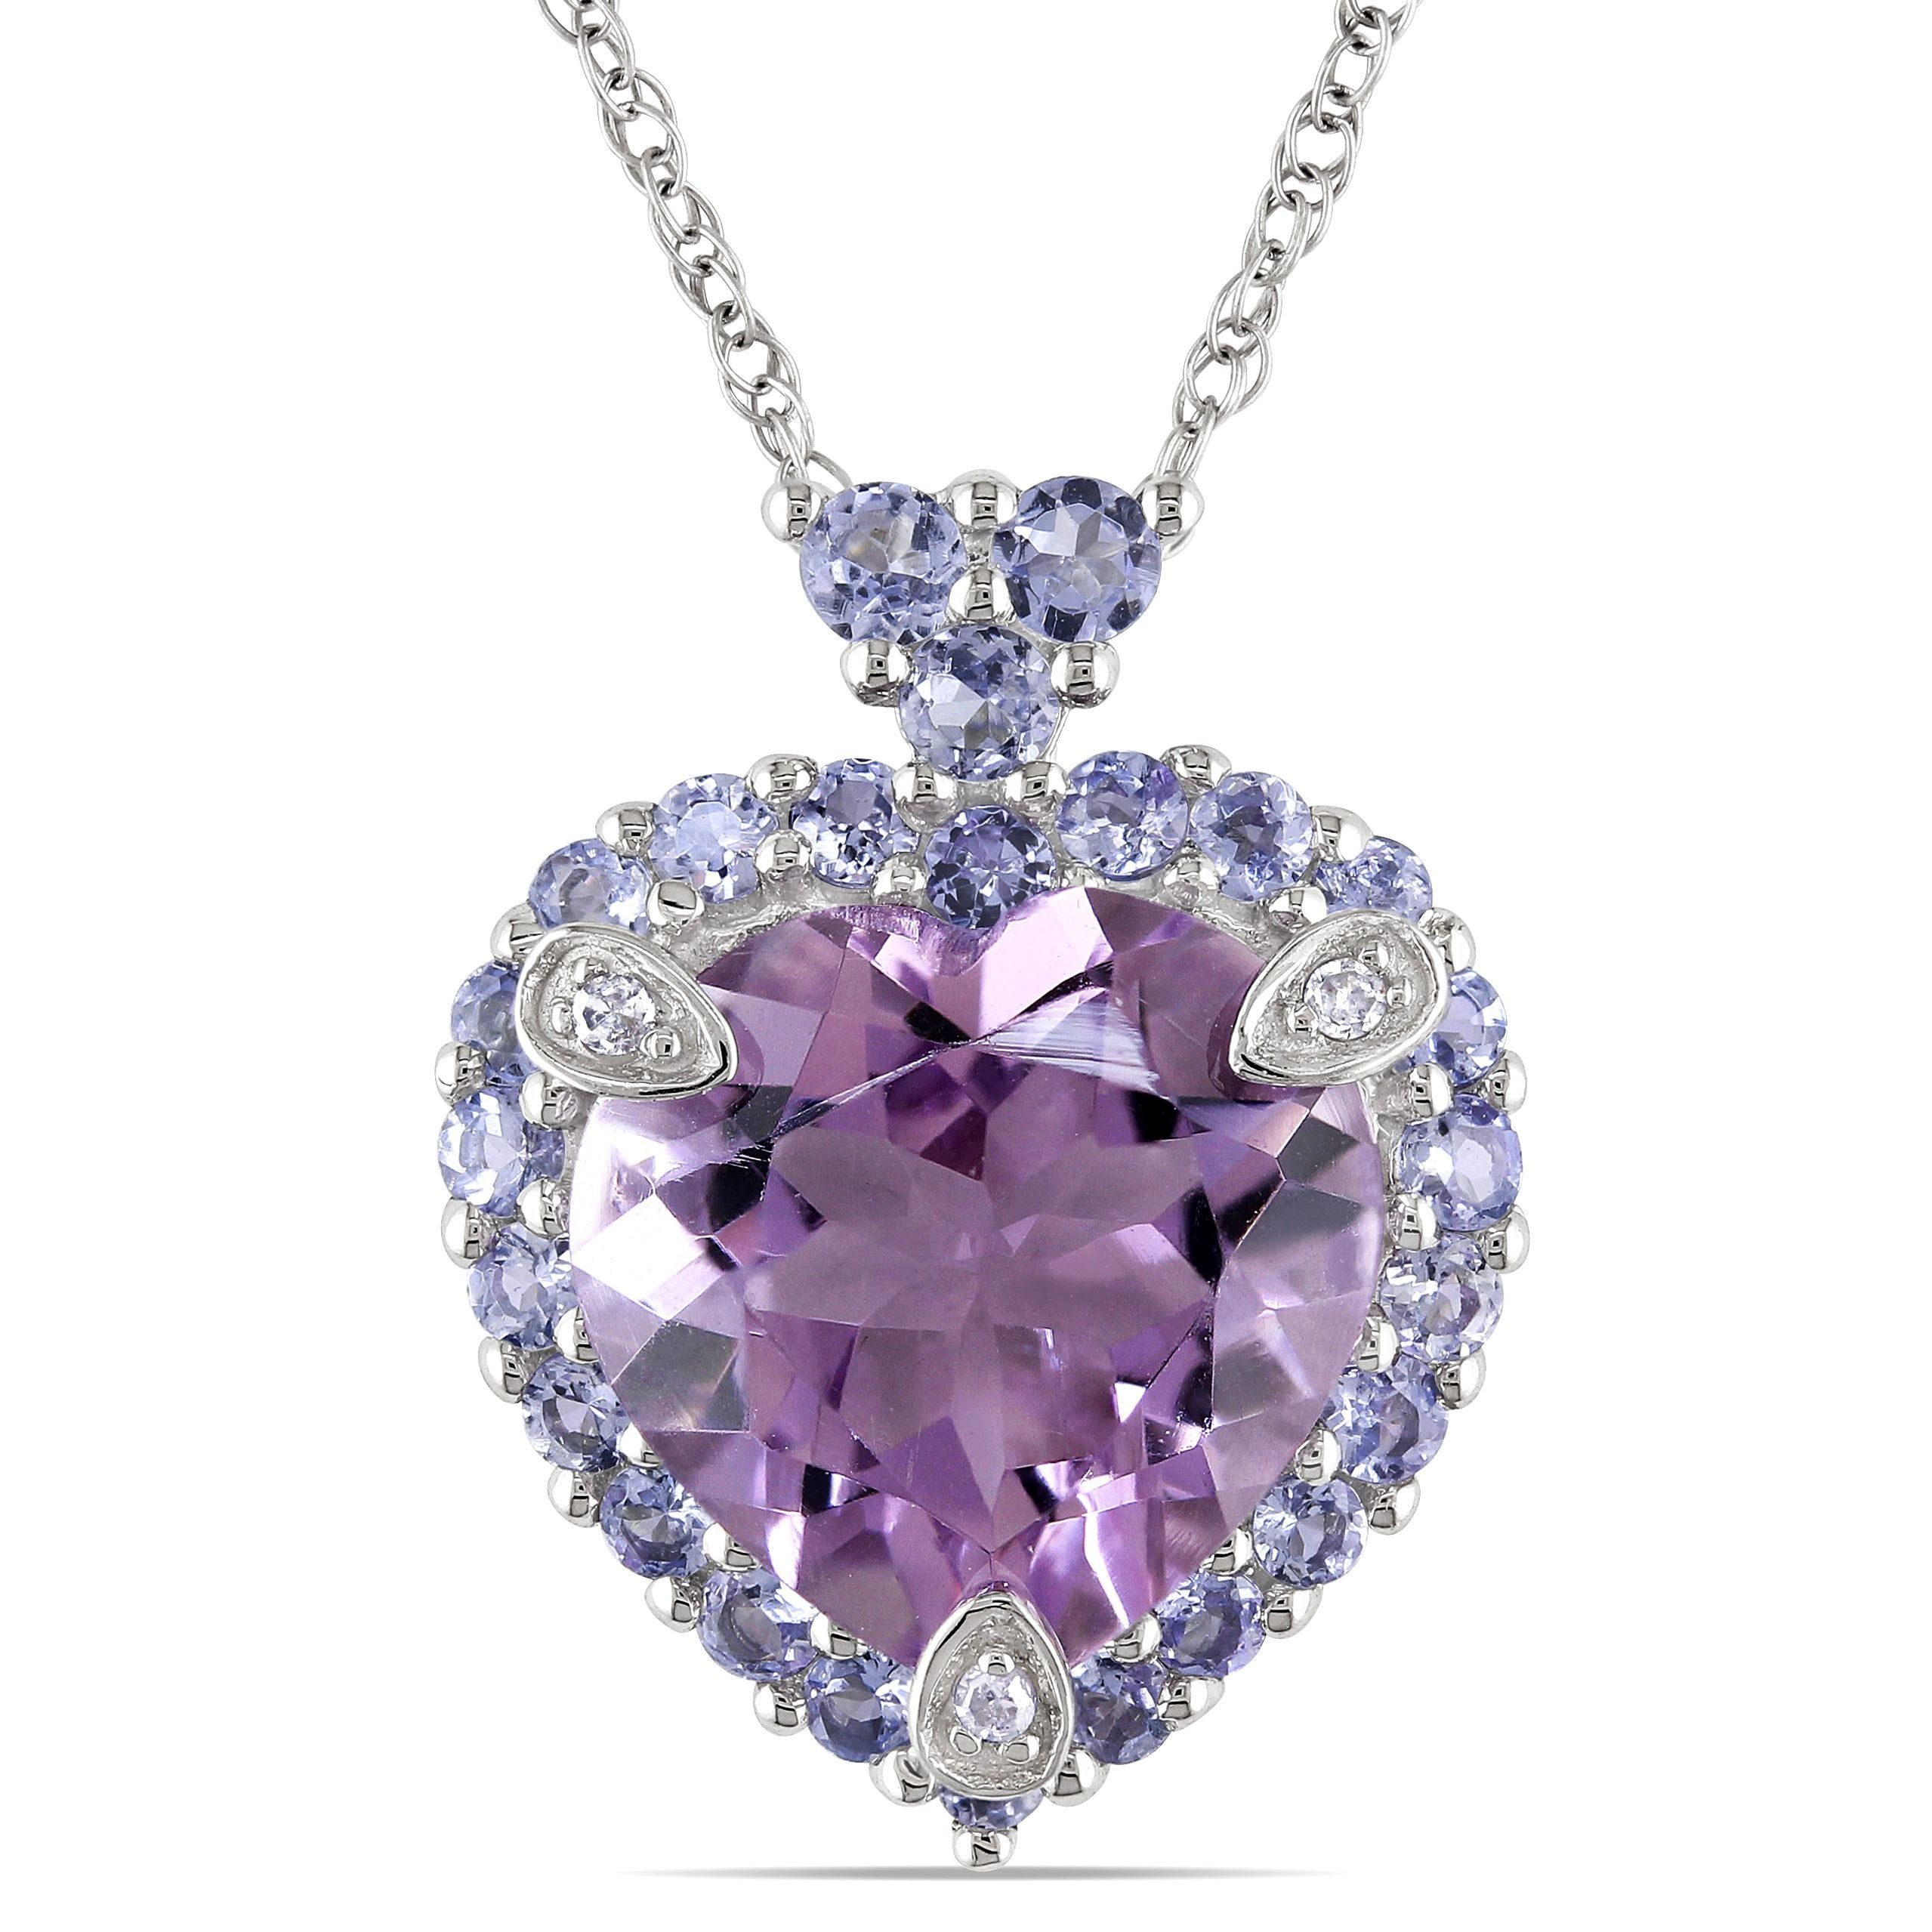 This eye catching 10 karat white gold amethyst heart pendant miadora 10k white gold amethyst tanzanite and diamond accented necklace overstock shopping the best deals on gemstone necklaces aloadofball Image collections